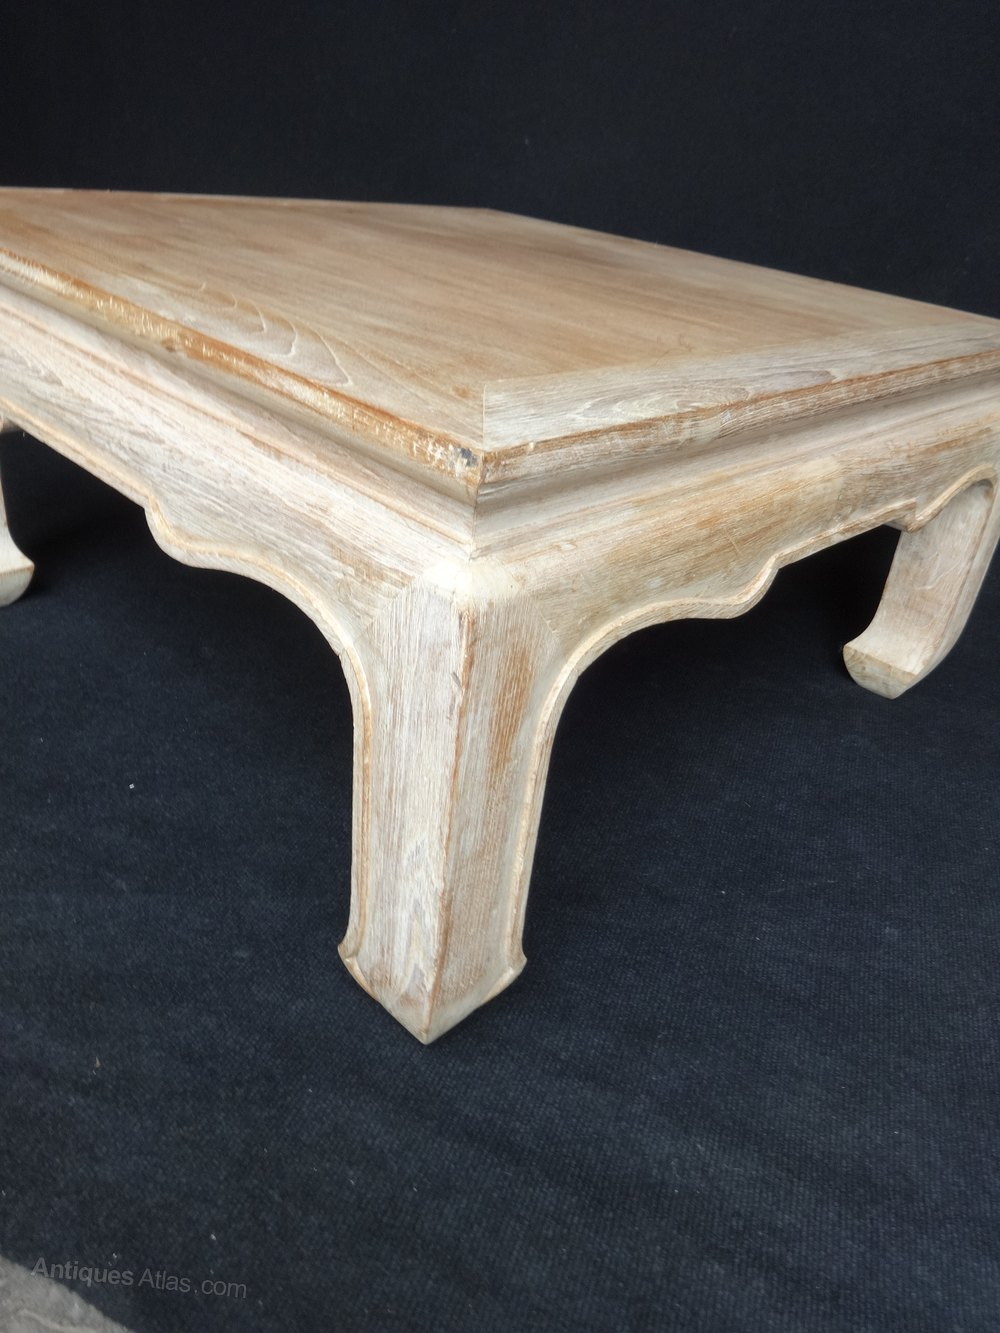 ... Tables OAK LIMED COFFEE TABLE LOW TABLE ...